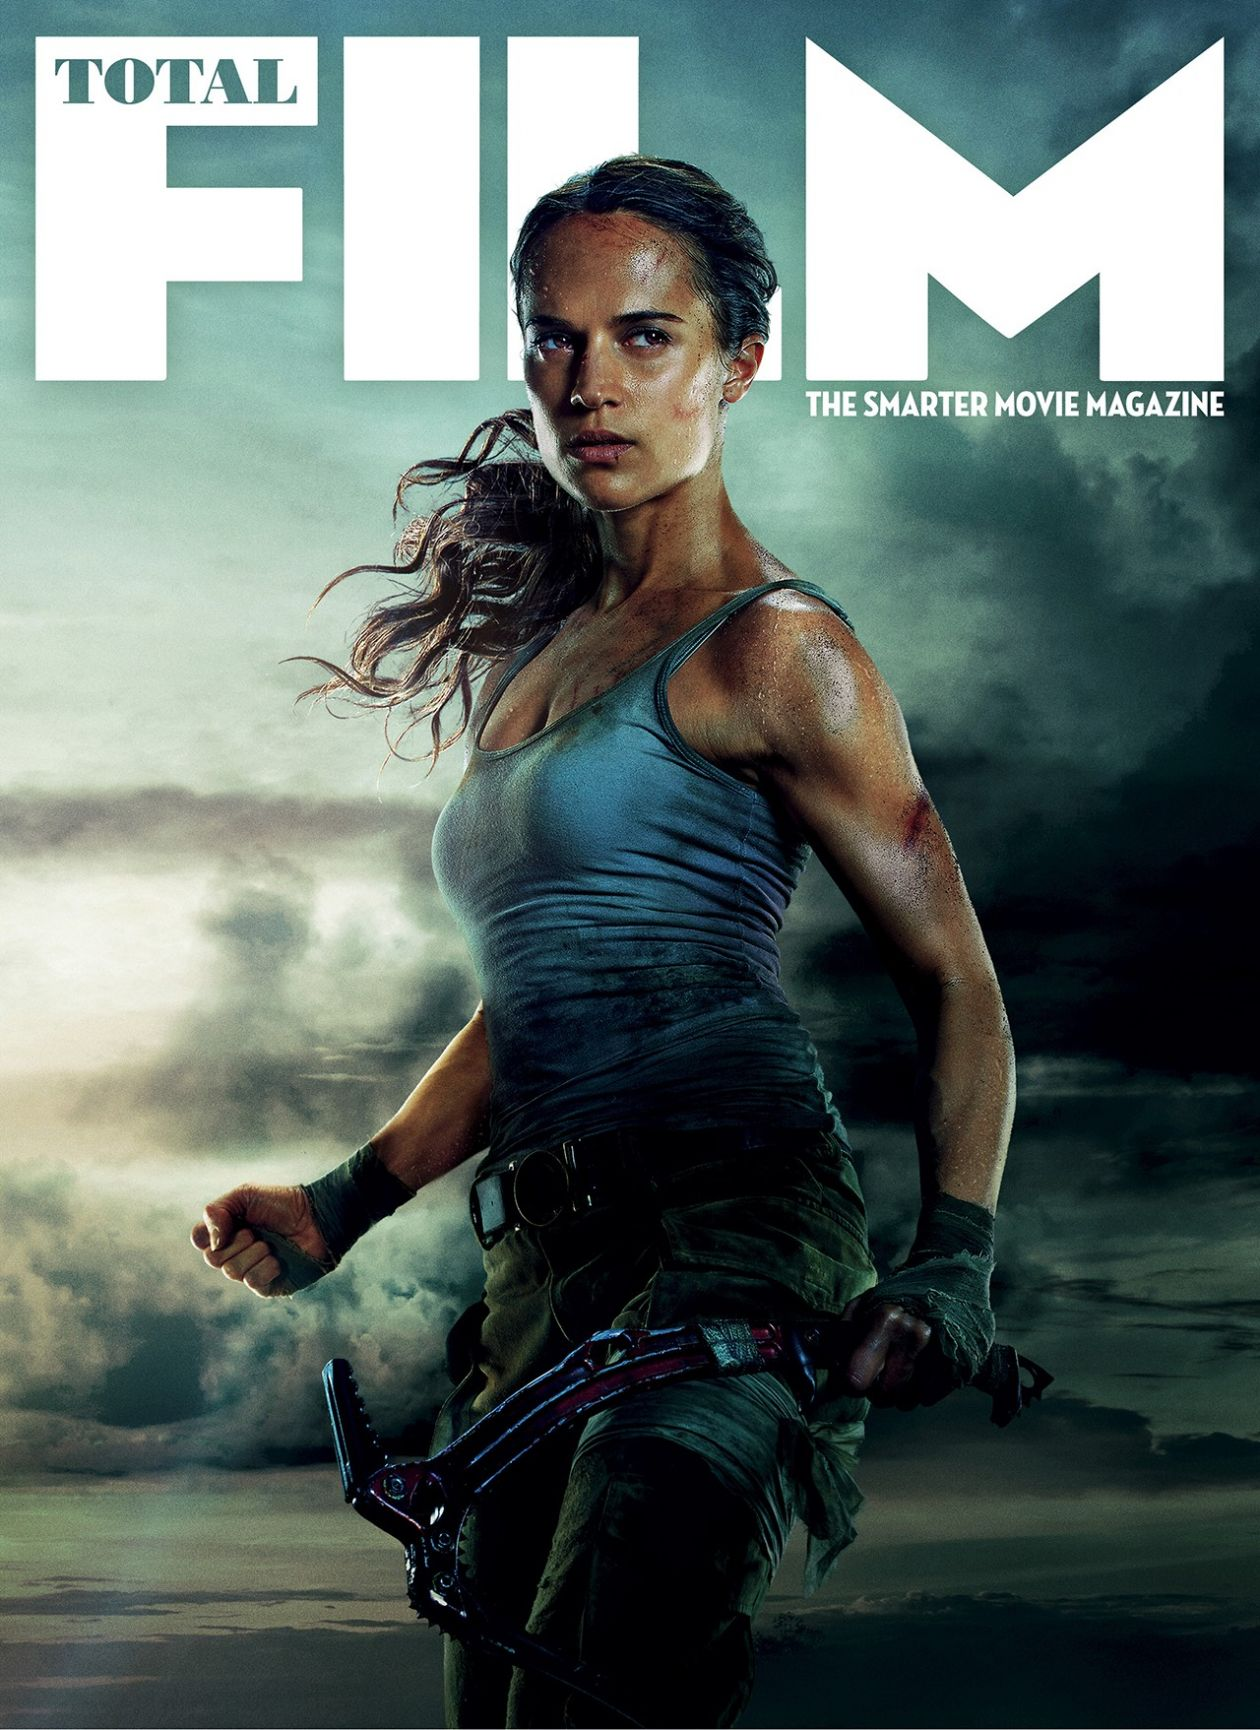 Alicia Vikander actress | Lara Croft | Tomb Raider 2018 | Total Film Magazine Cover / Poster